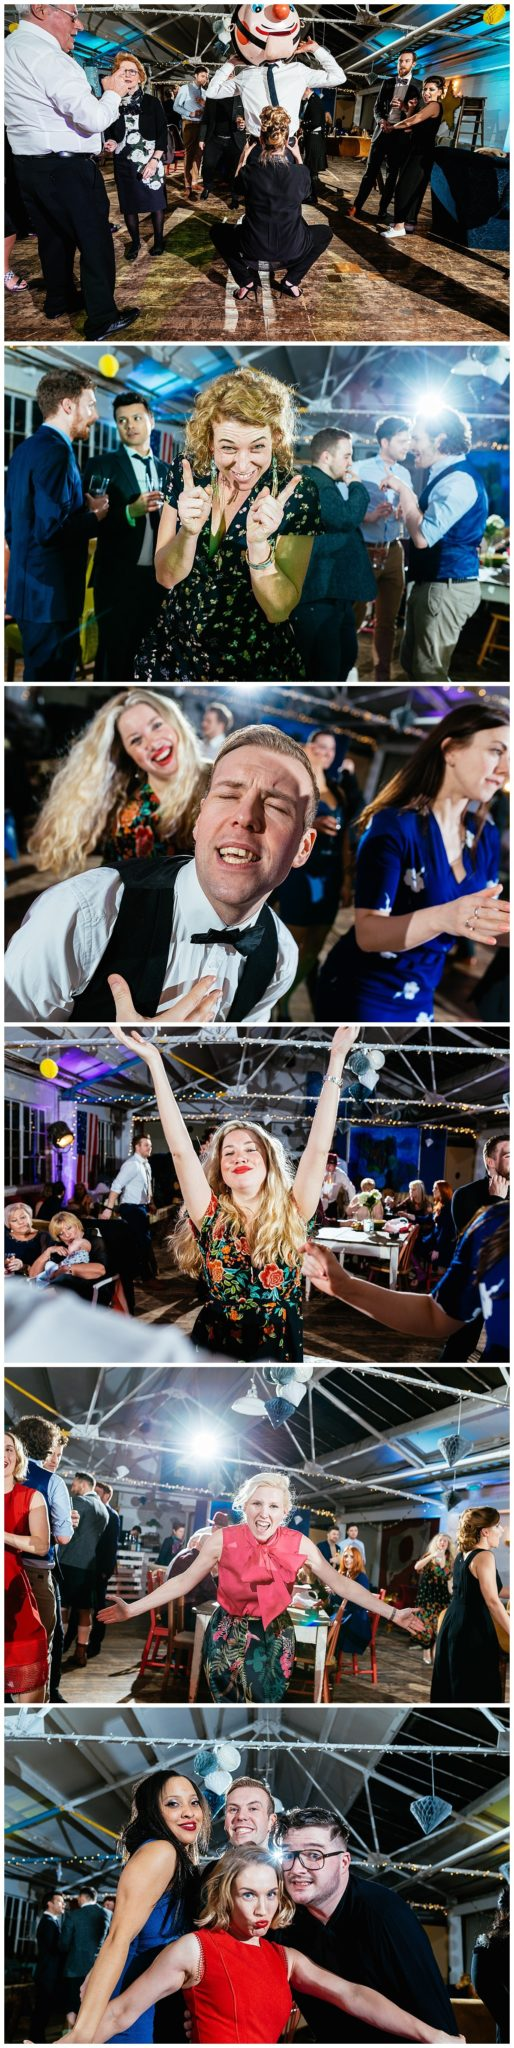 Michael James London Warehouse Hay Wedding 095-NIKON D810 18 mm 1-125 sec at f - 4.0 ISO 400 04 Mar 1903 (976)__Alternative Wedding Photographers London Gay Samesex Colourful.jpg